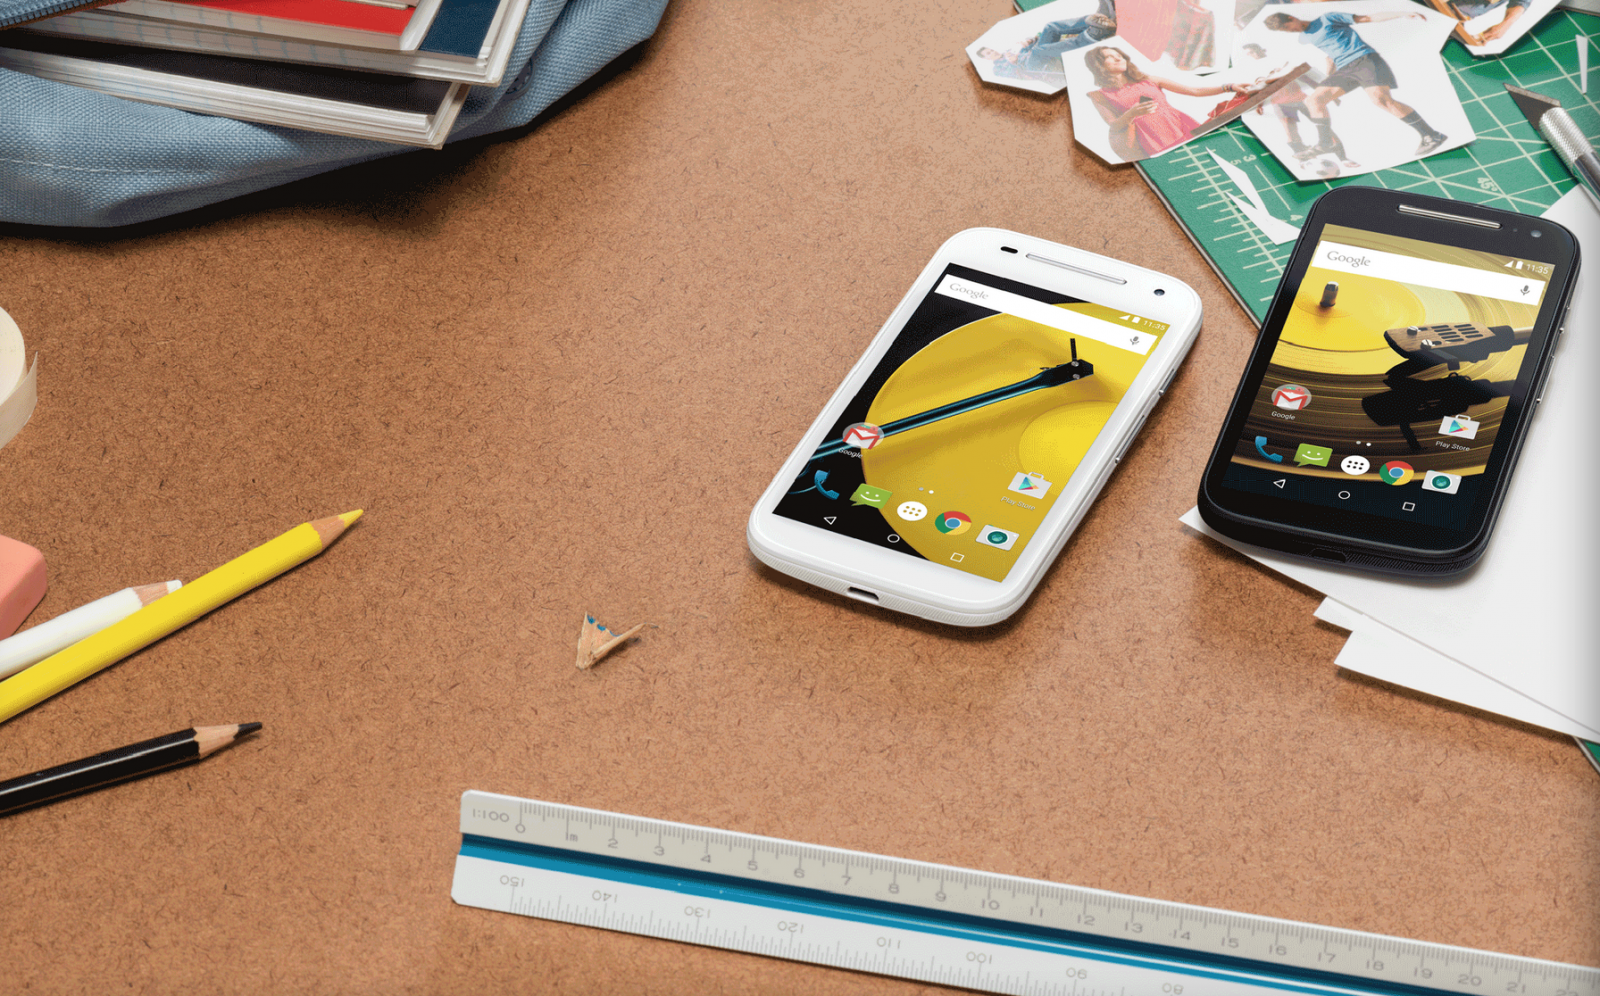 New Moto E launched with 4G and bigger screen